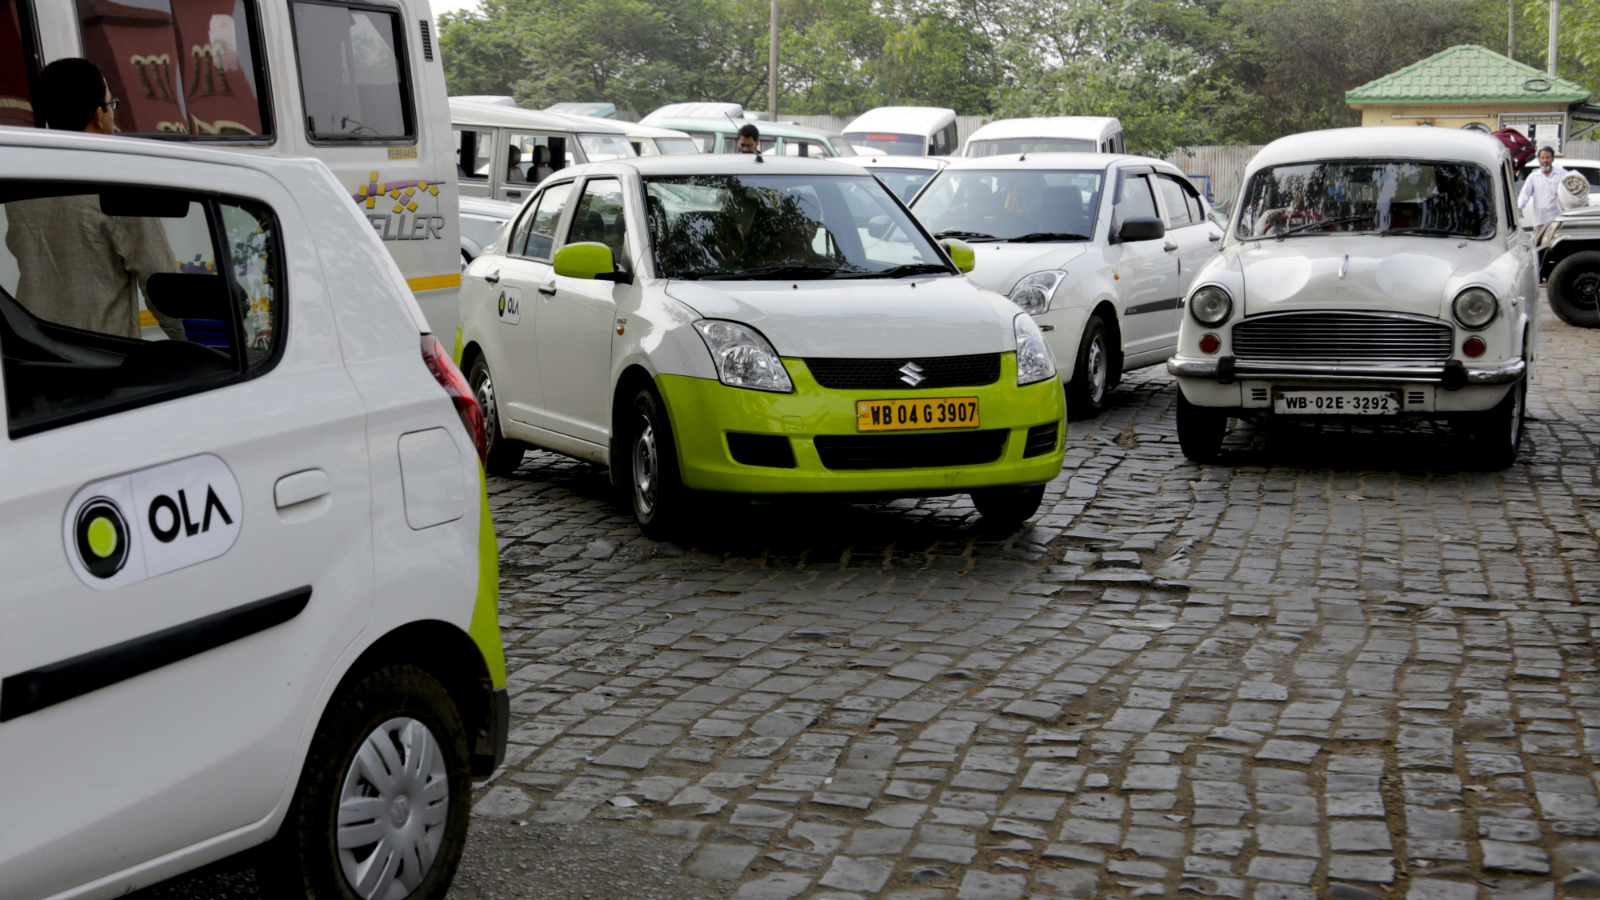 Image result for latest images of ola cab in bengaluru